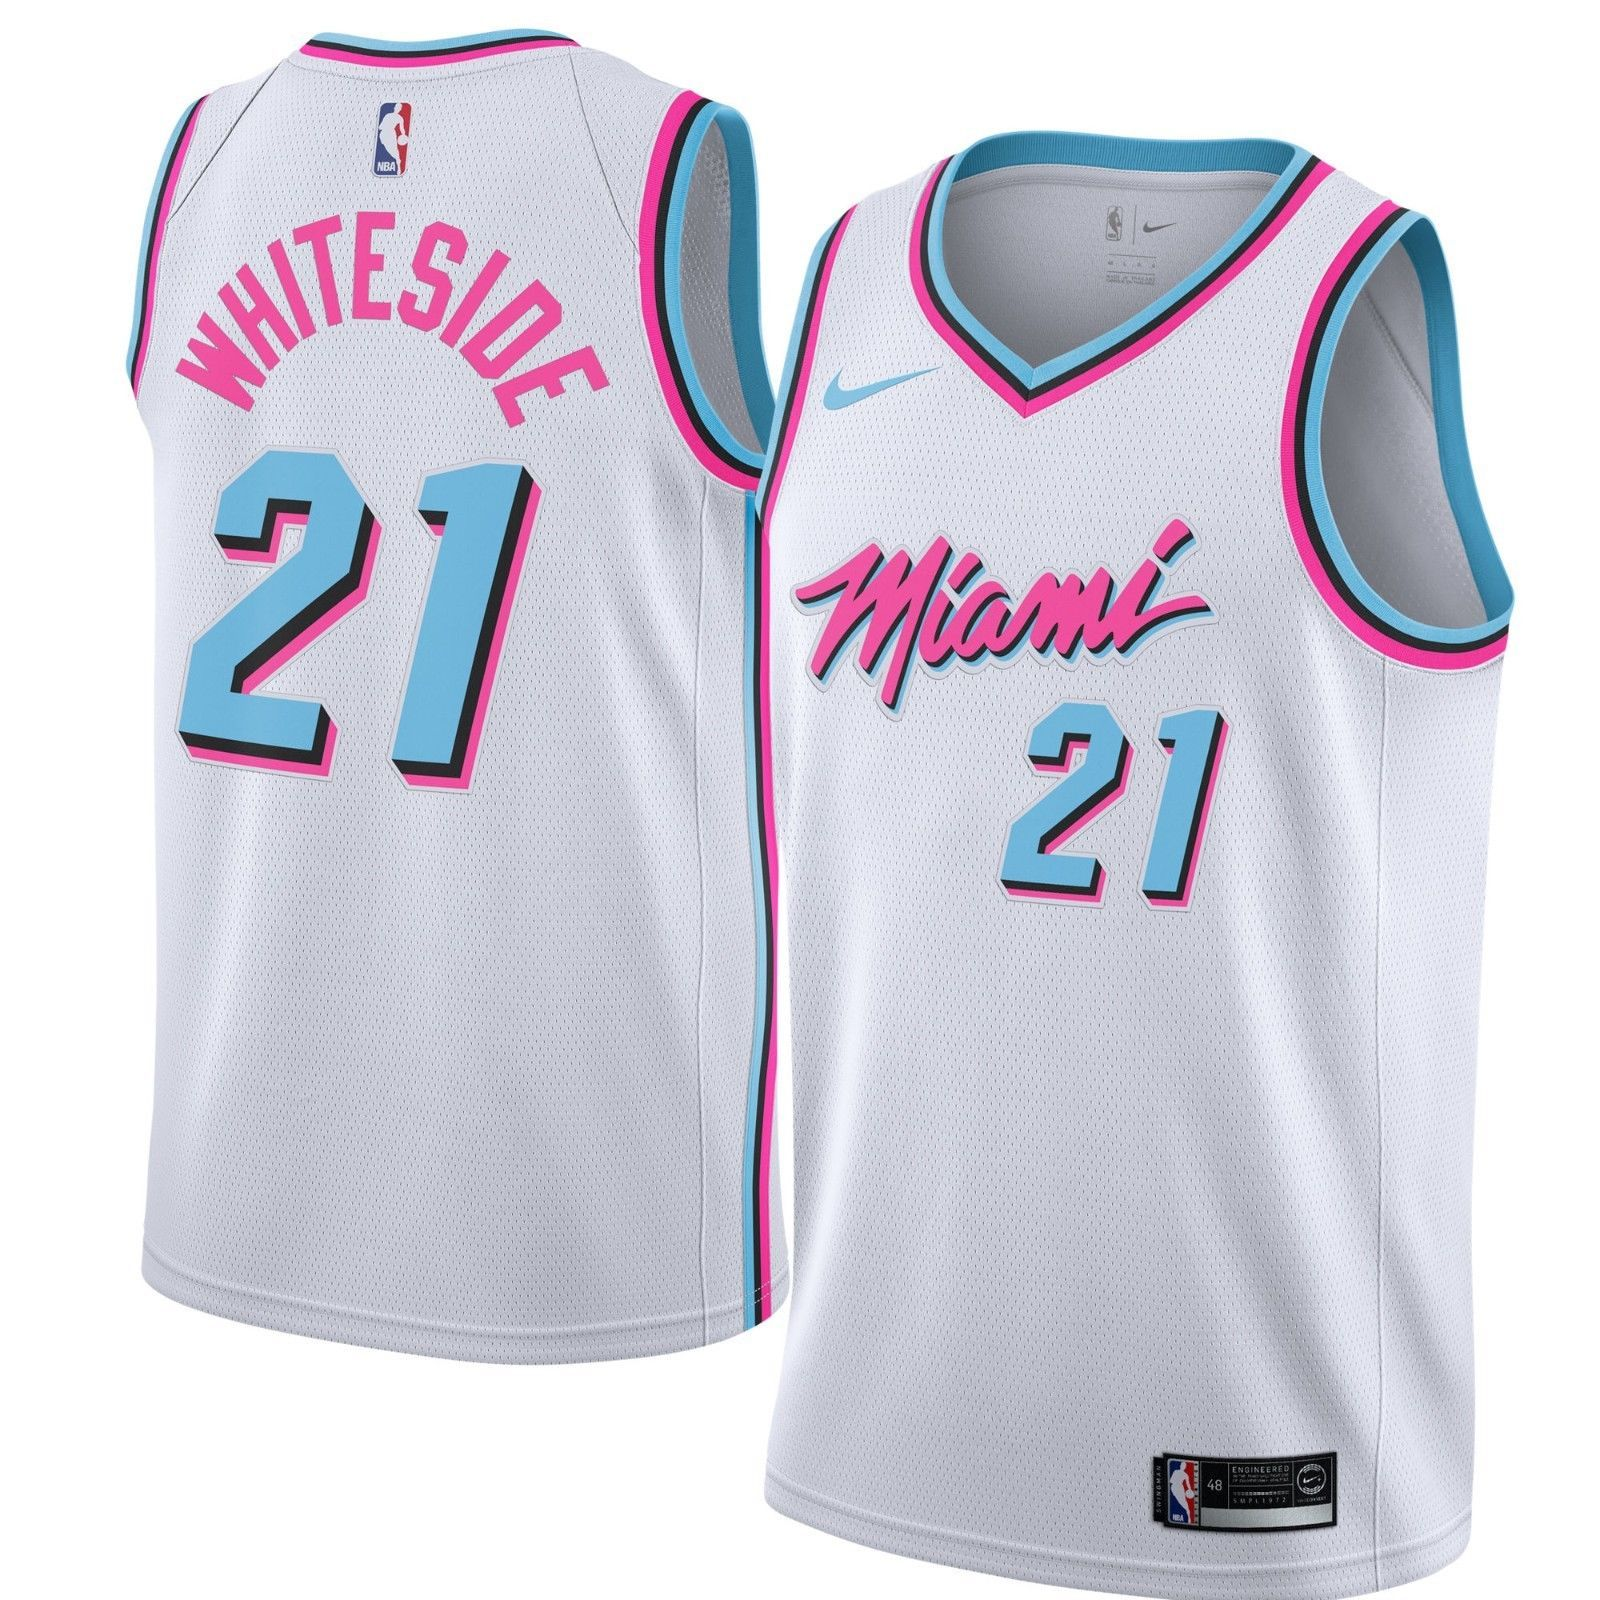 0c3cfb5b159 Image result for miami heat city jersey 2018